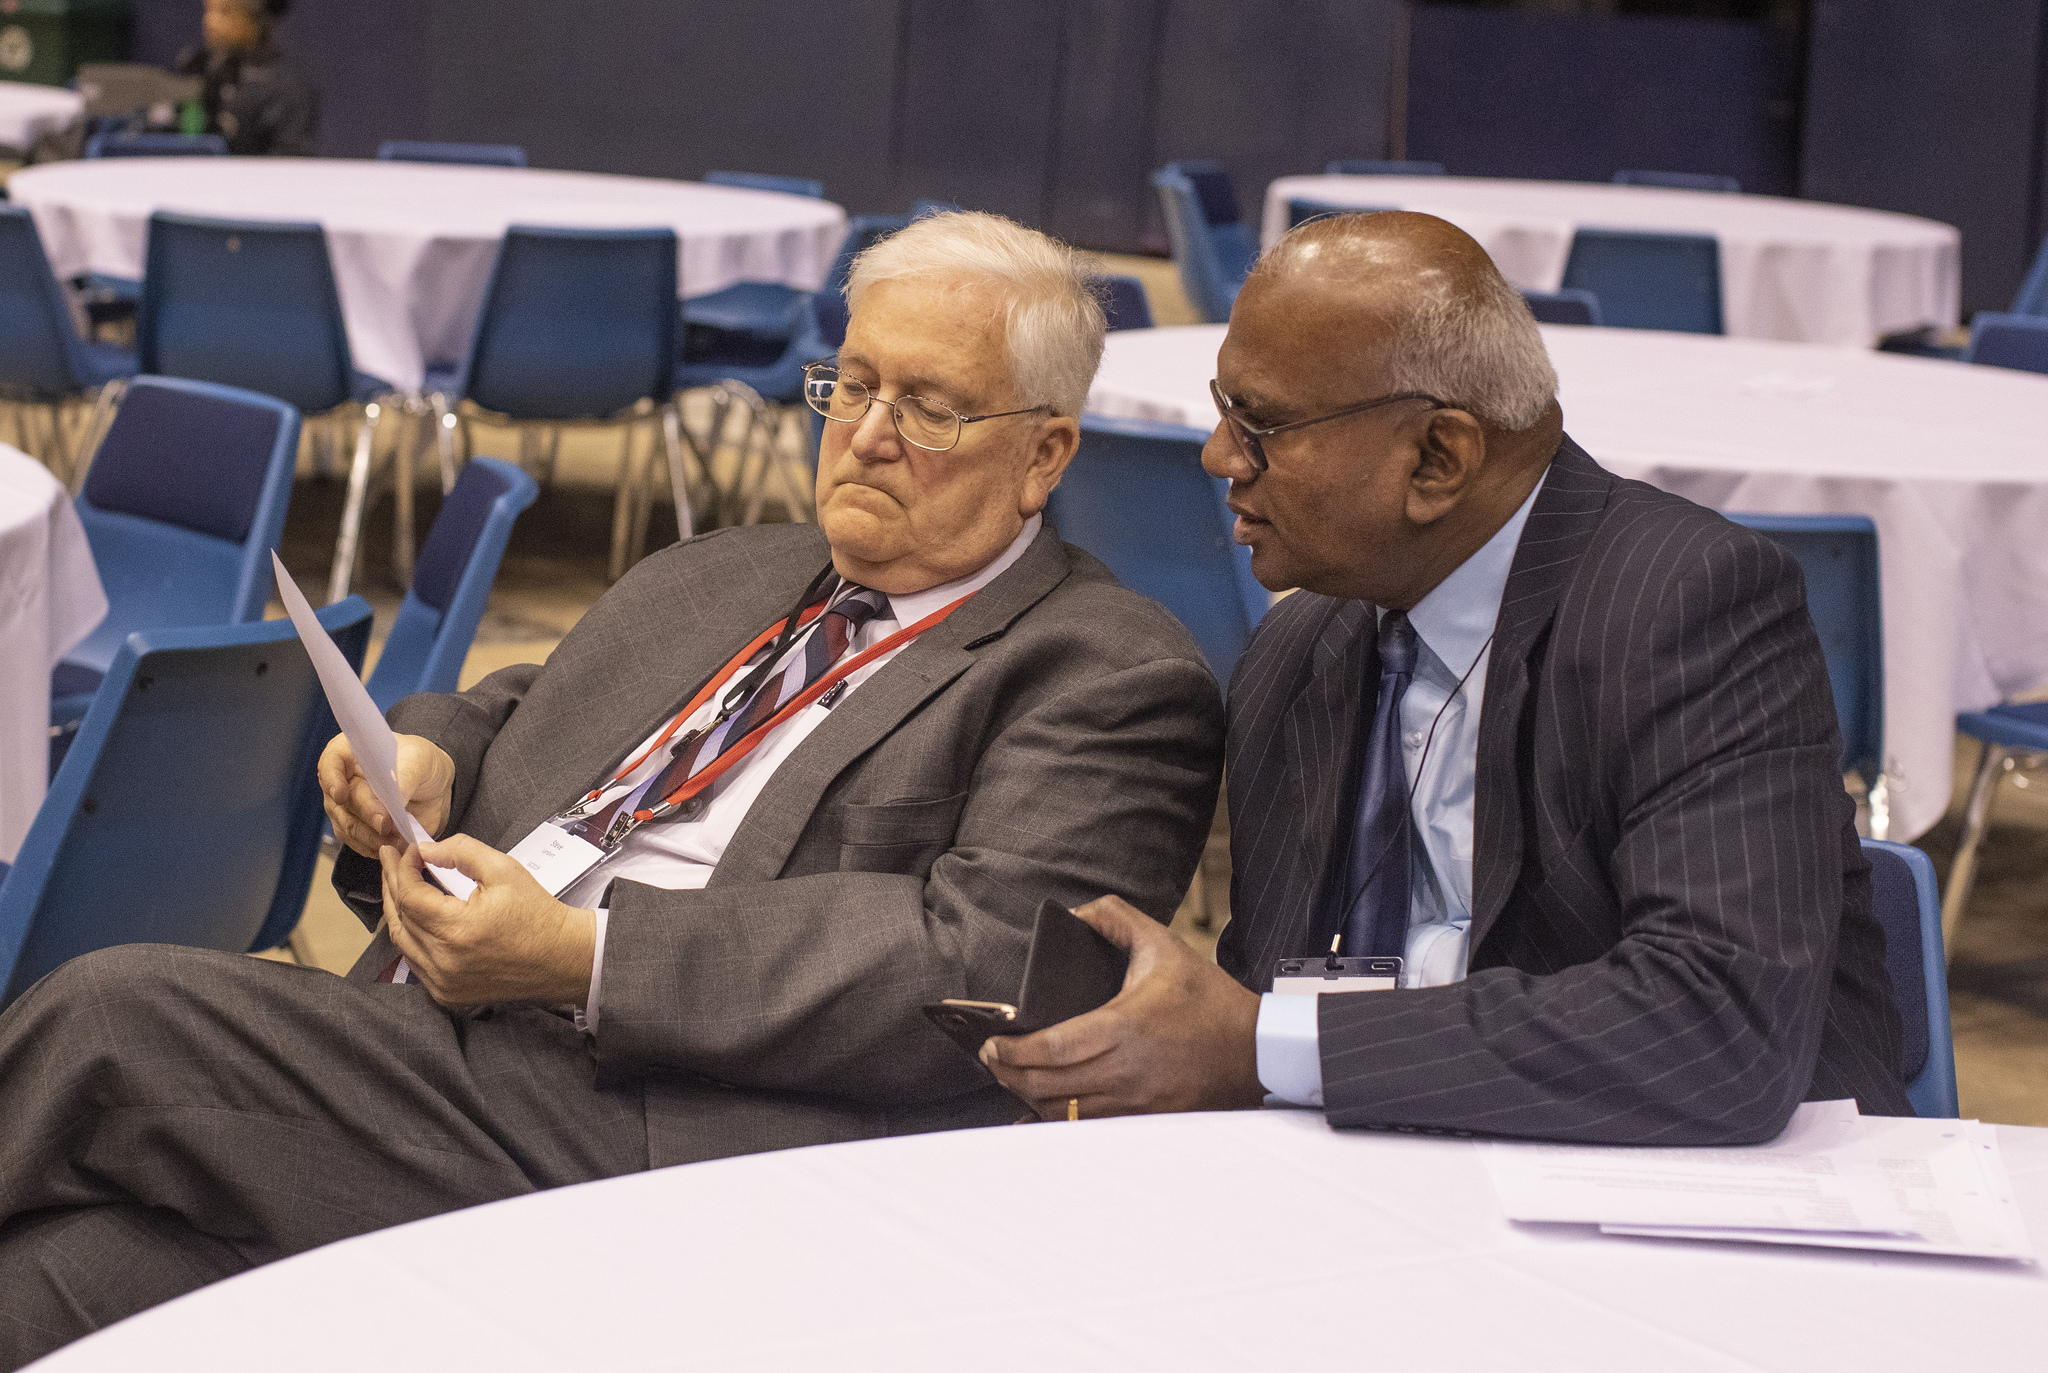 Steven Lambert (left), general counsel, and A. Moses   Kumar, general secretary and treasurer, both at The   General Council on Finance and Administration, listen   from the floor during the 2019 United Methodist General   Conference in St. Louis on Feb. 25. Photo by Kathleen   Barry, UMNS.